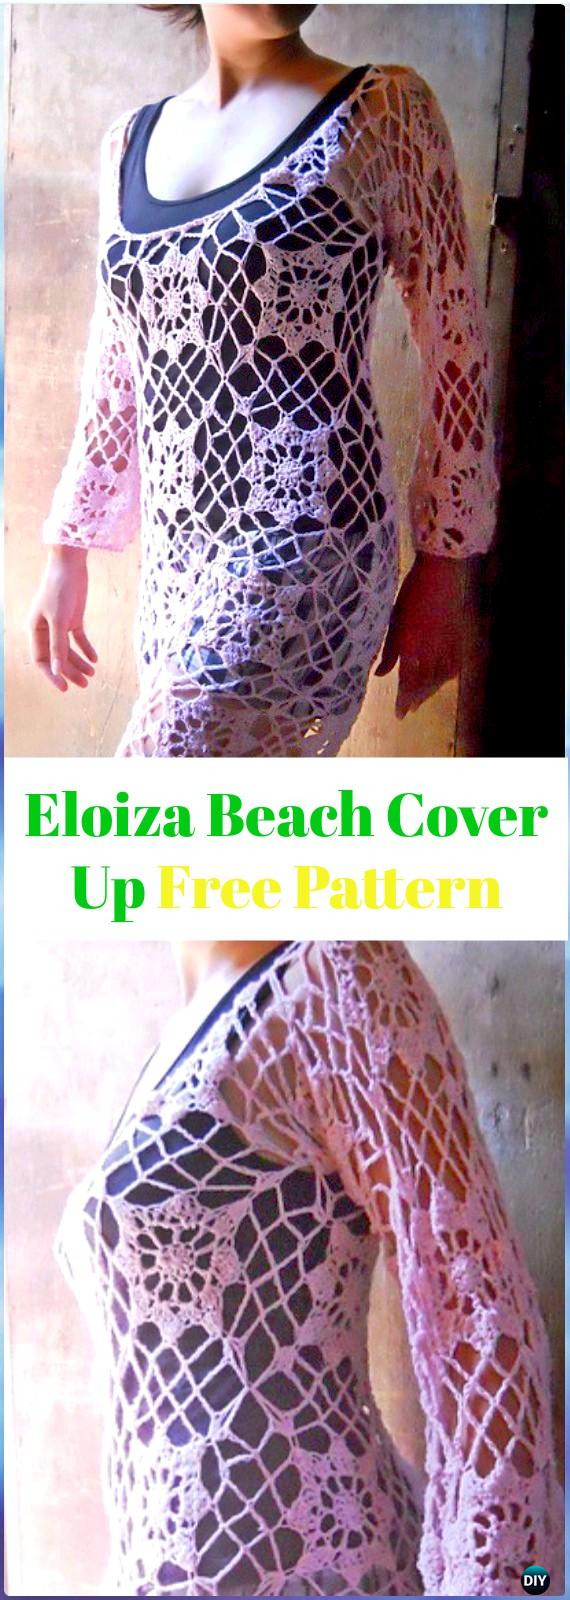 Elegant Crochet Beach Cover Up Free Patterns Women Summer top Crochet Beach Cover Up Patterns Of Adorable 47 Models Crochet Beach Cover Up Patterns